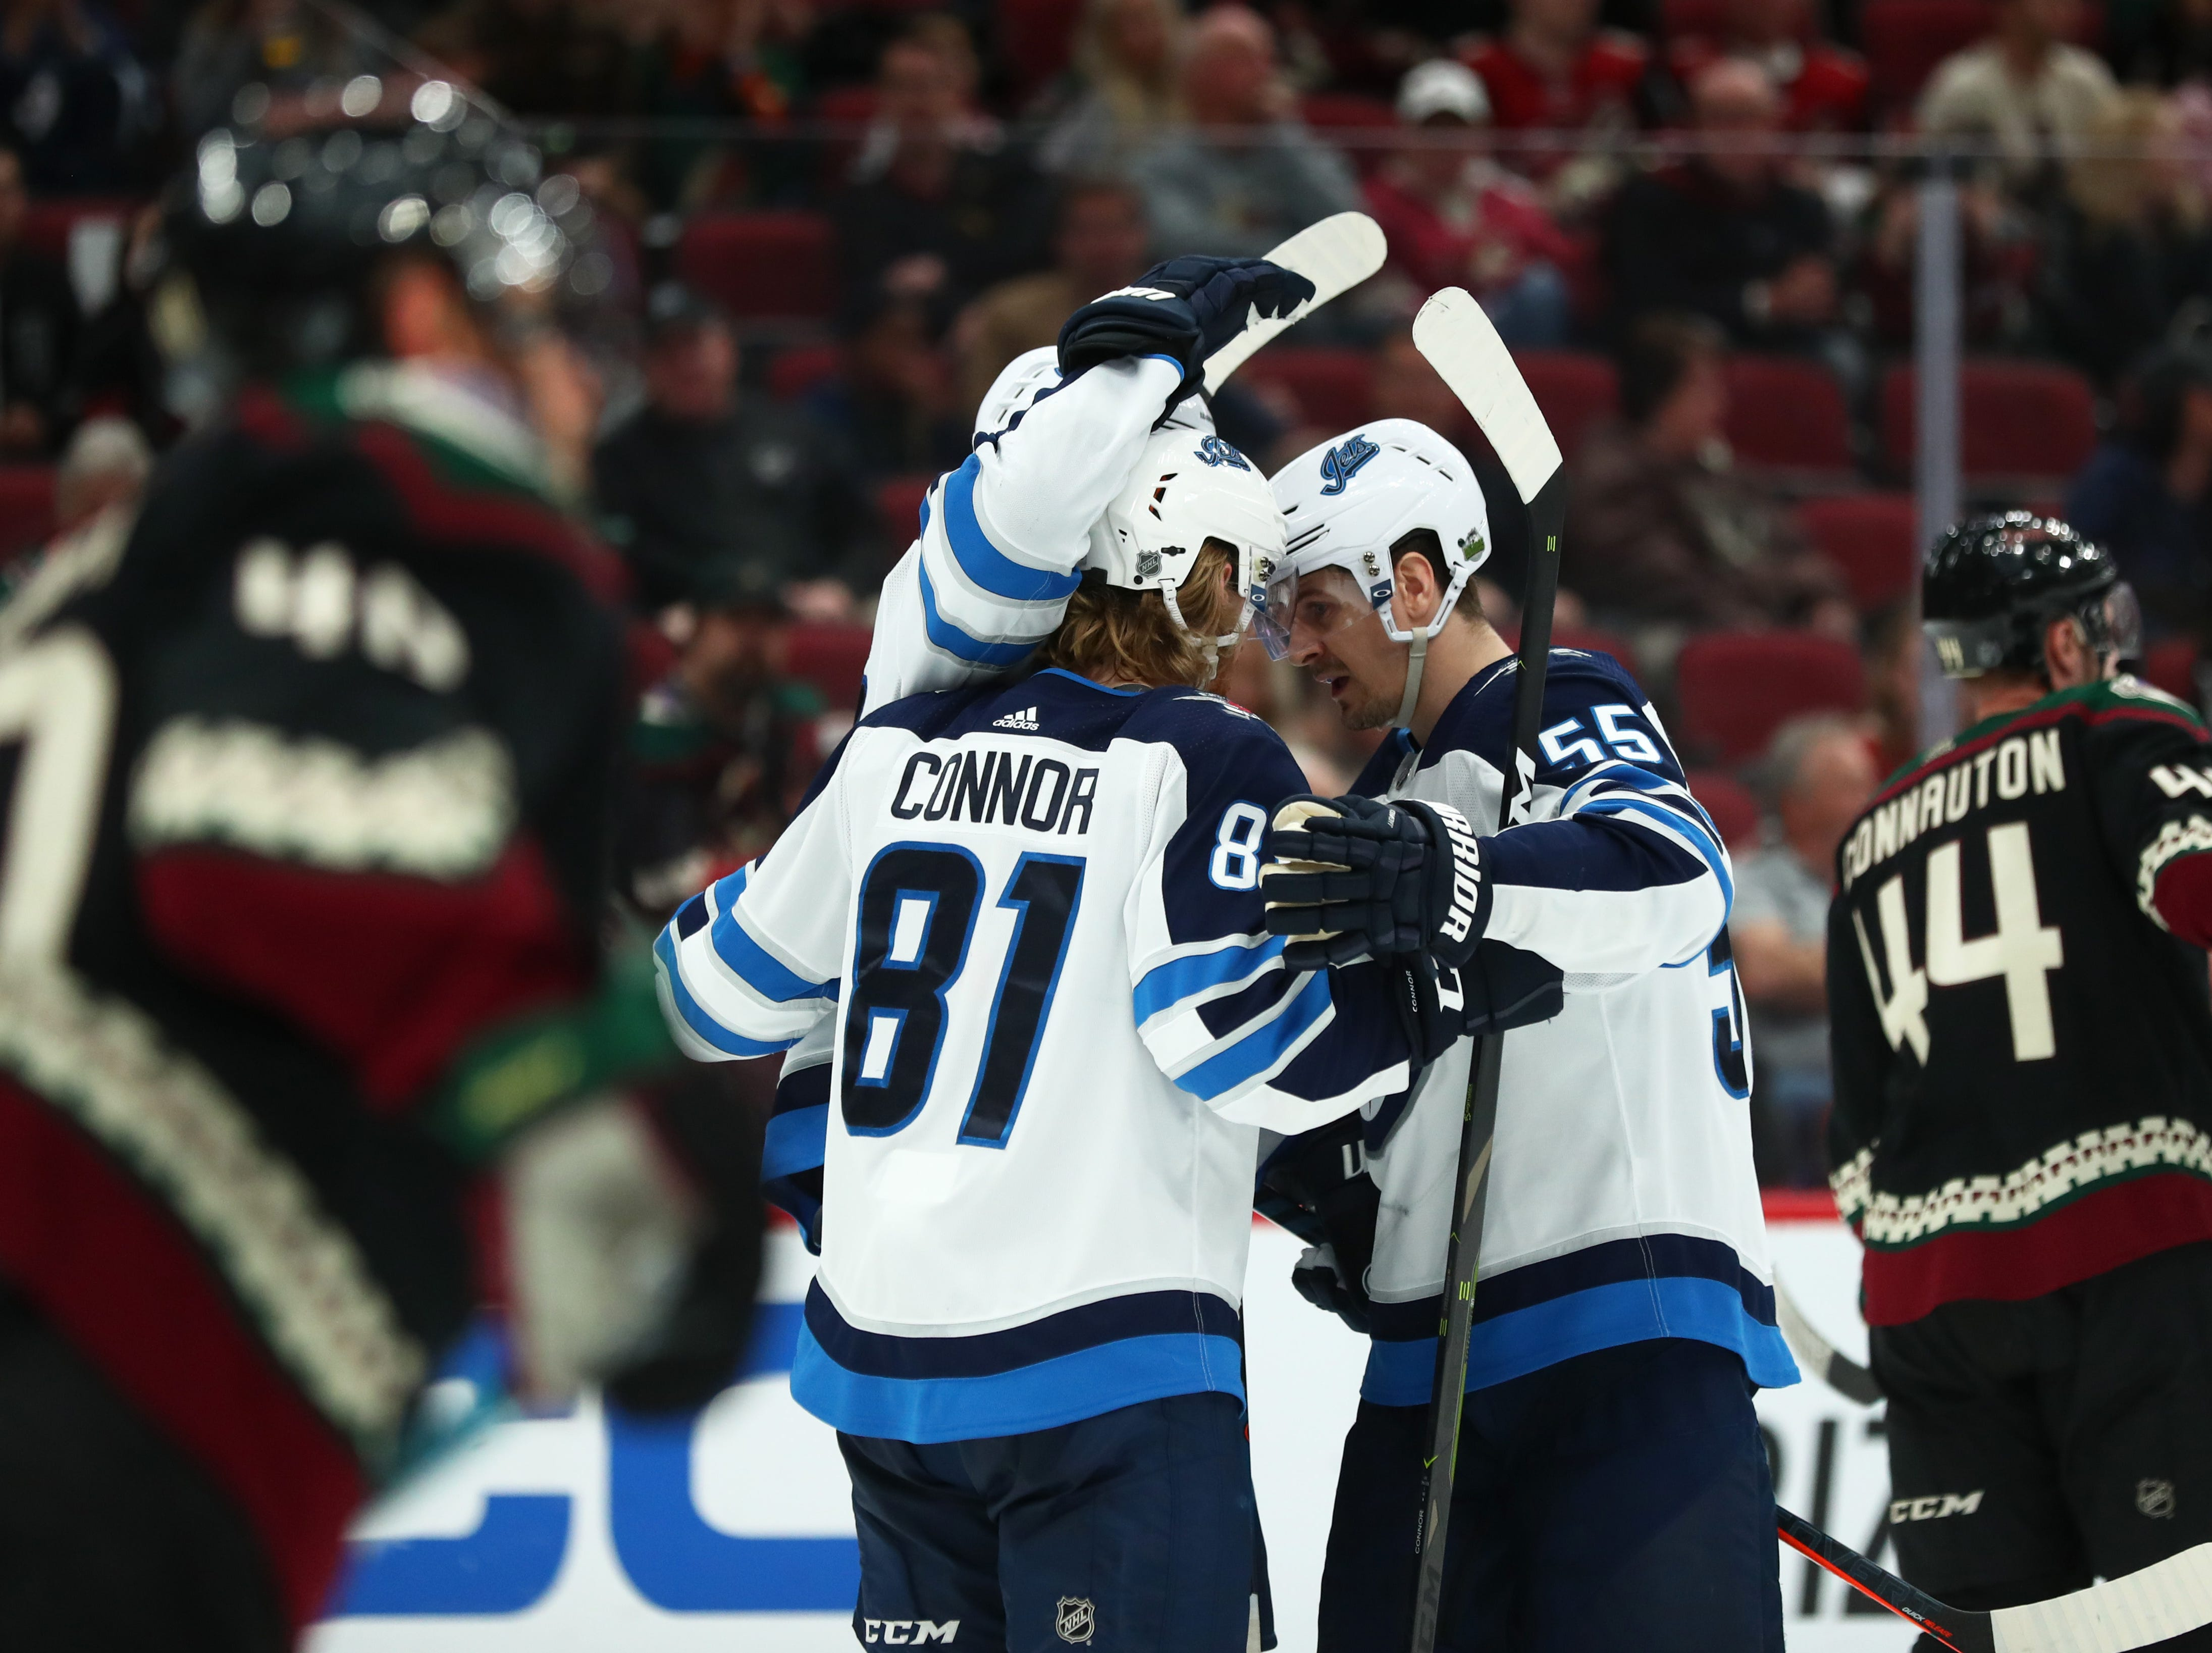 Apr 6, 2019; Glendale, AZ, USA; Winnipeg Jets left wing Kyle Connor (81) celebrates with teammates after scoring a goal against the Arizona Coyotes in the second period at Gila River Arena. Mandatory Credit: Mark J. Rebilas-USA TODAY Sports